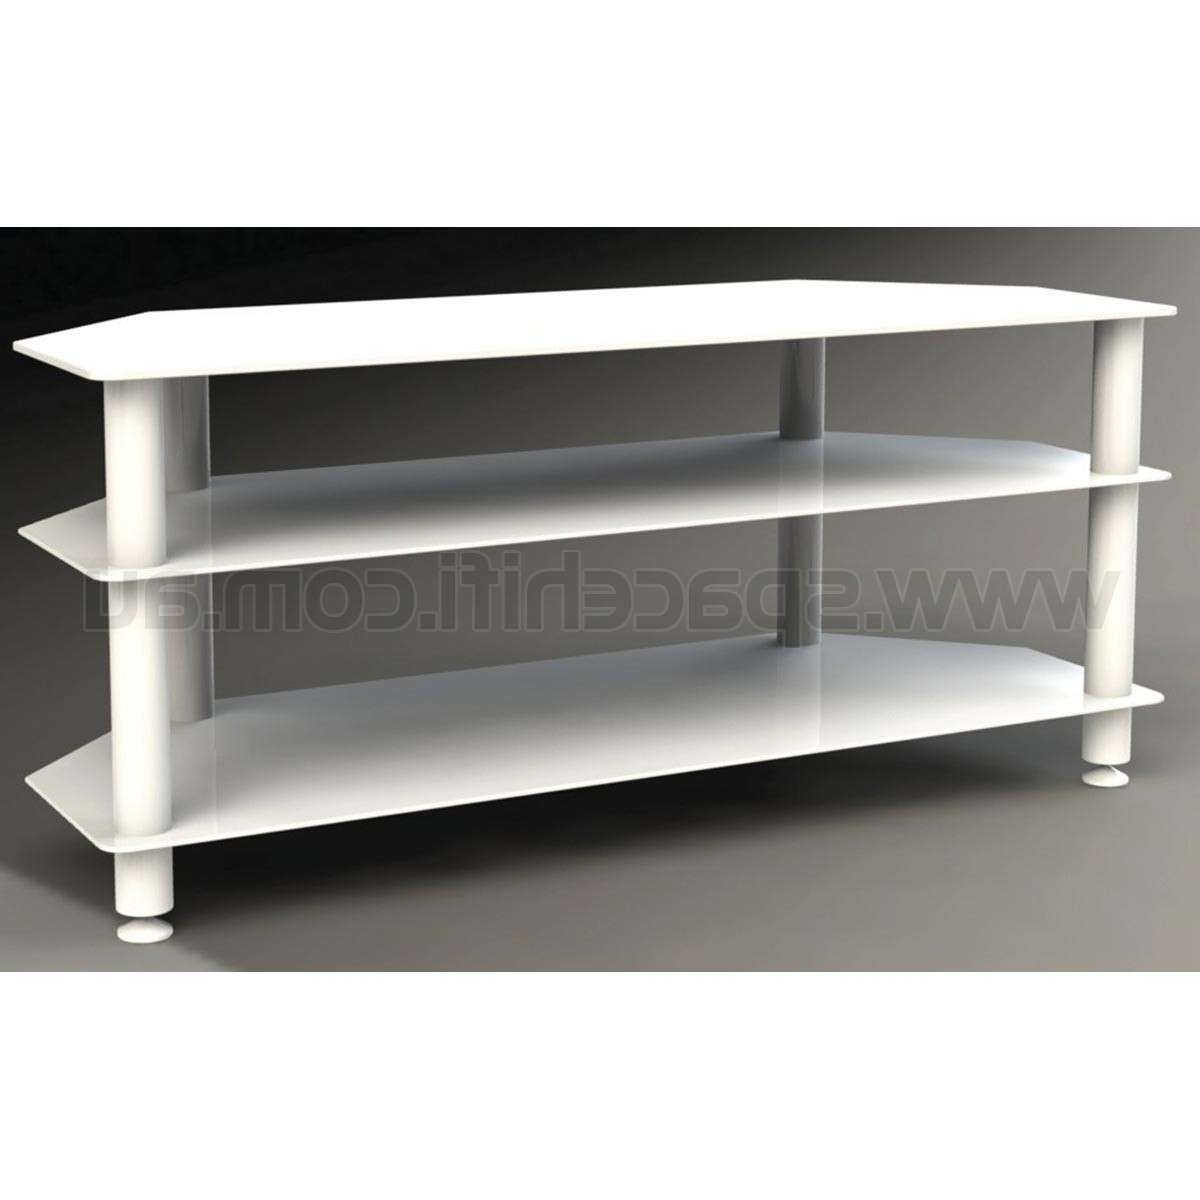 Tauris Ace 1200mm 3 Shelf White Glass Tv Unit Stand | Space Hi Fi Intended For Glass Tv Cabinets (View 10 of 20)